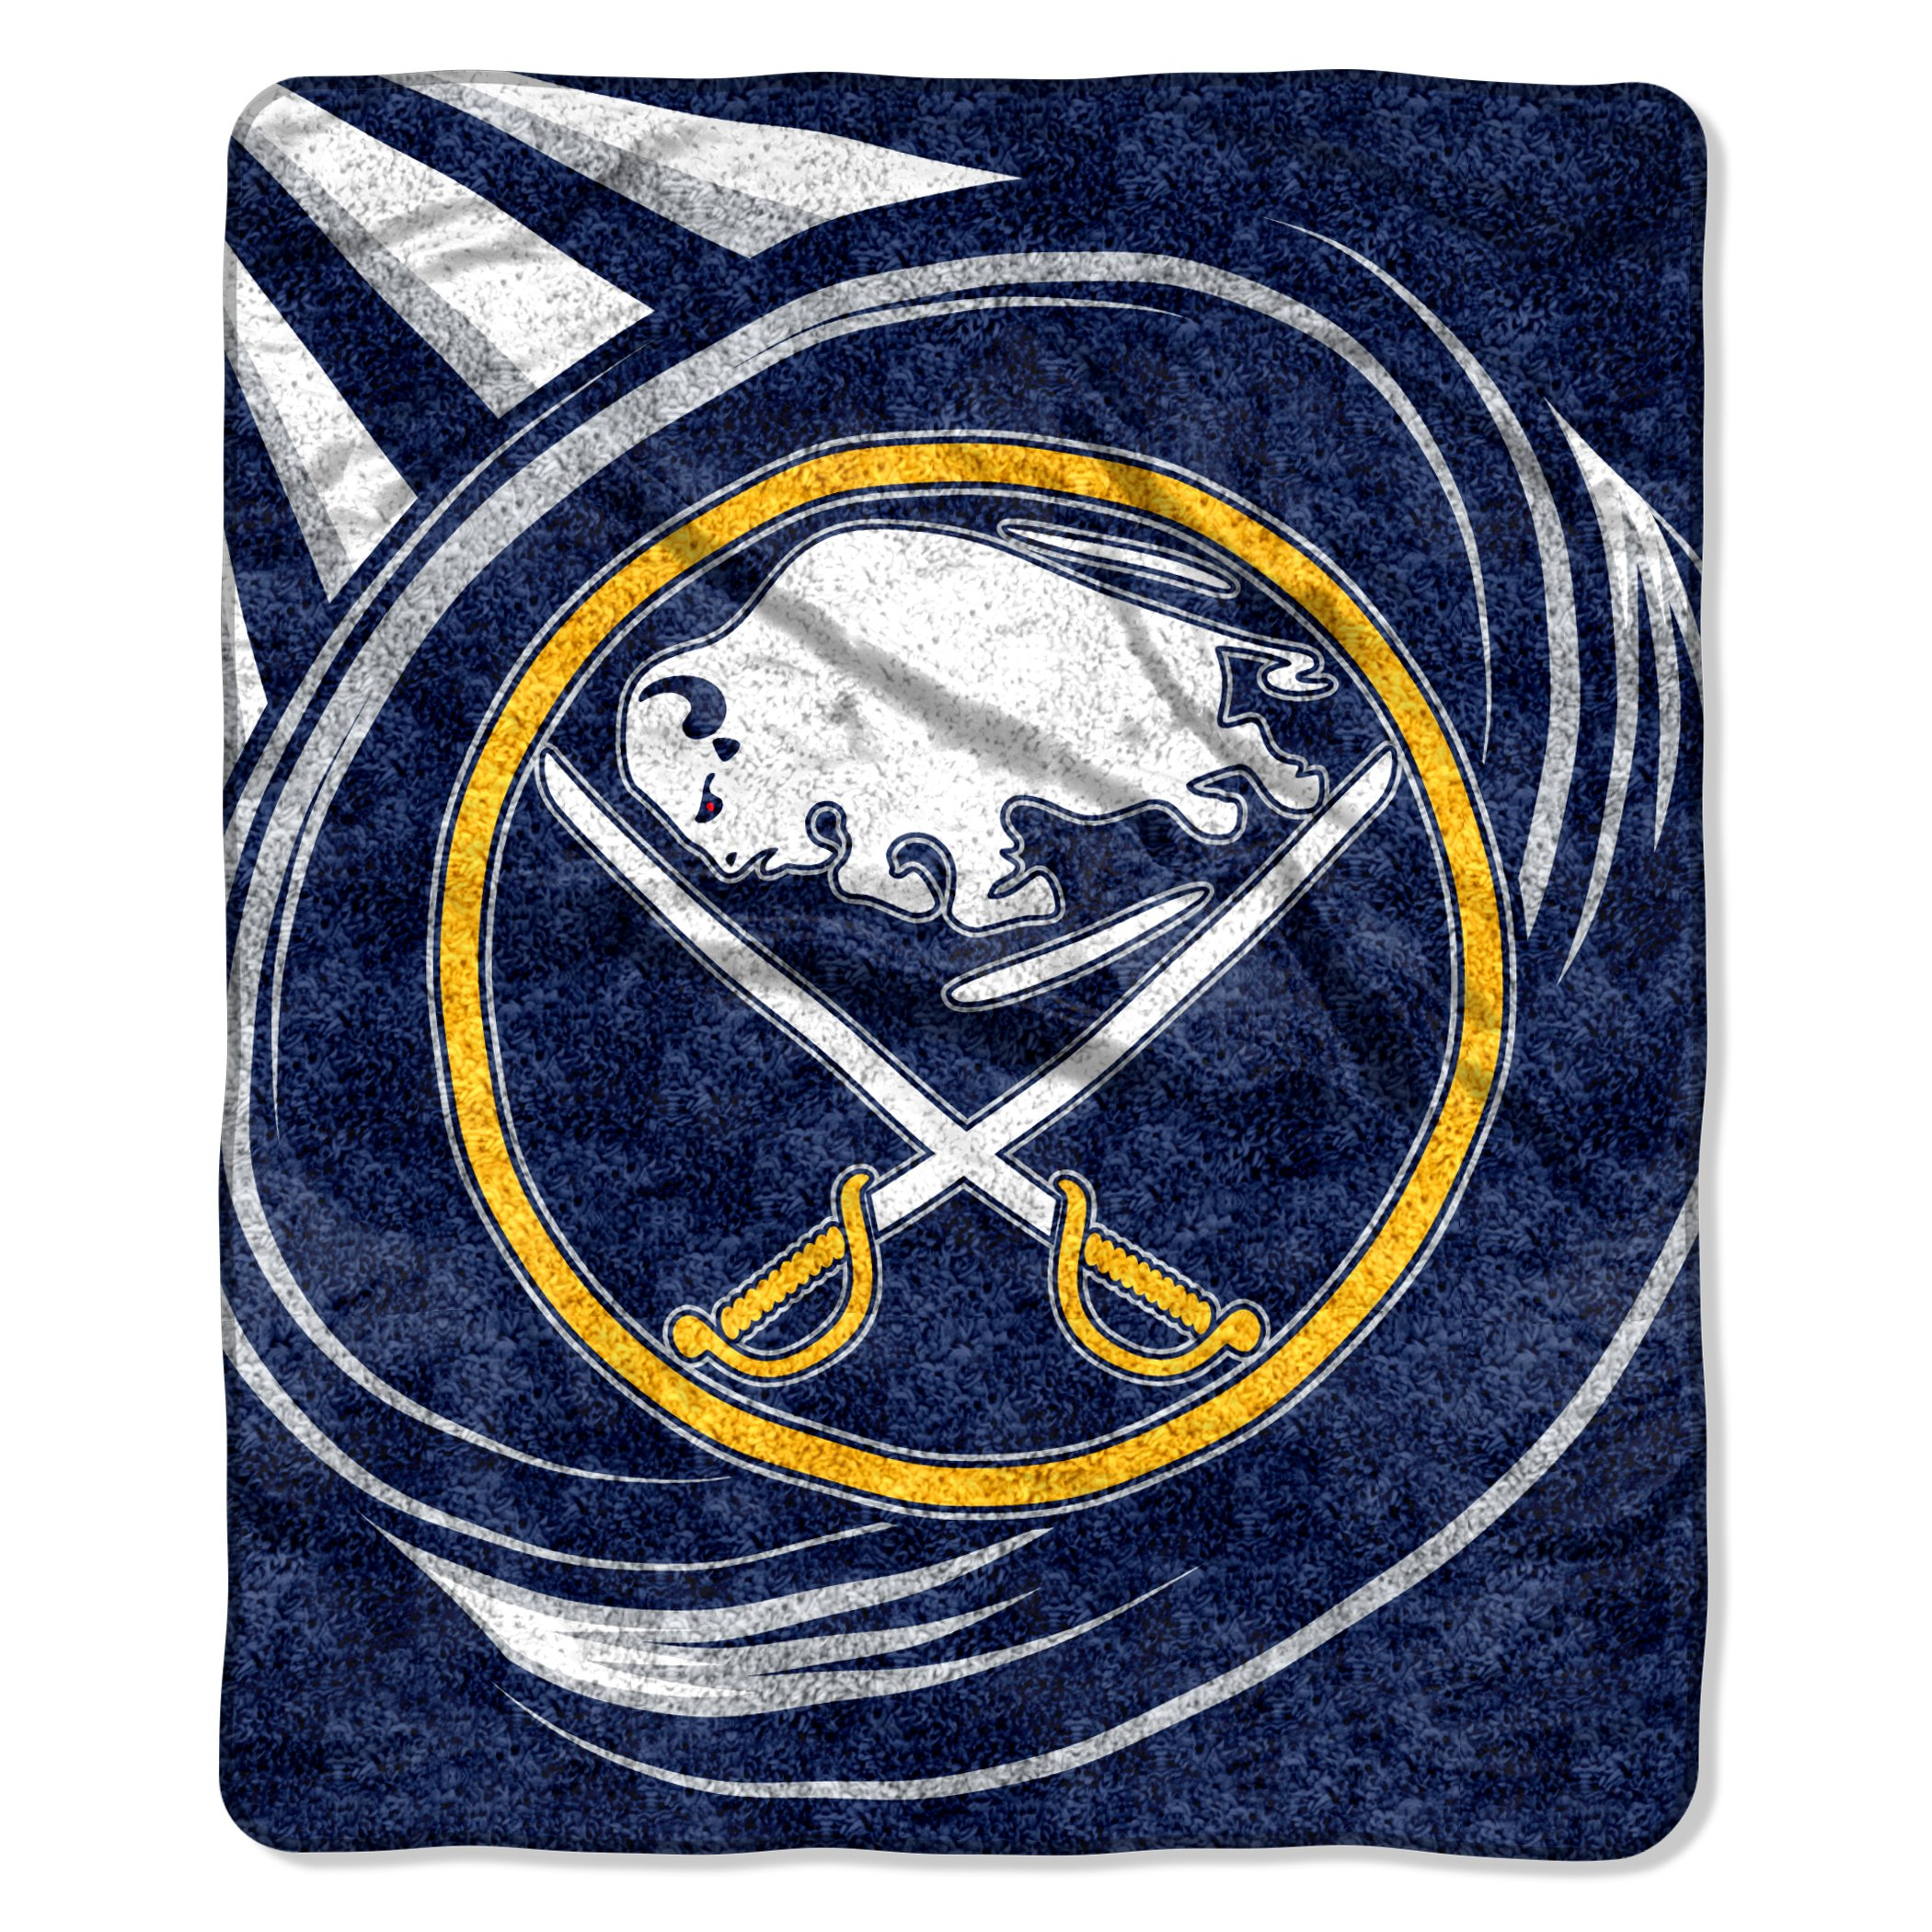 The Northwest Company Officially Licensed NHL Buffalo Sabres Puck Sherpa on Sherpa Throw Blanket, 50'' x 60'', Multi Color by The Northwest Company